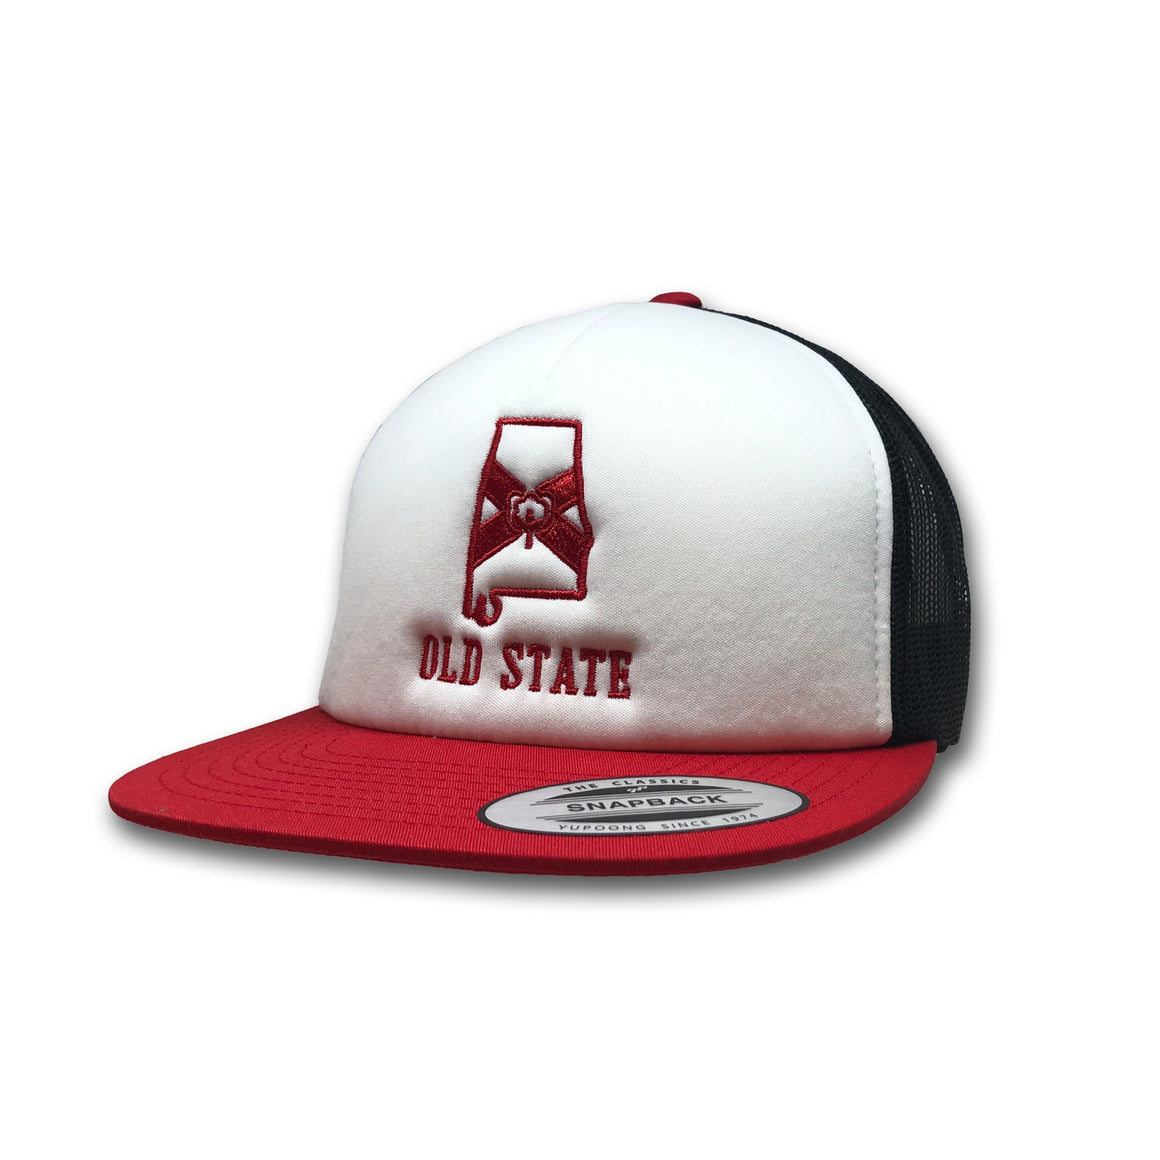 Old State Pride Hats Red Black and White Alabama - AL White Front Foam  Trucker 9fad007a374a